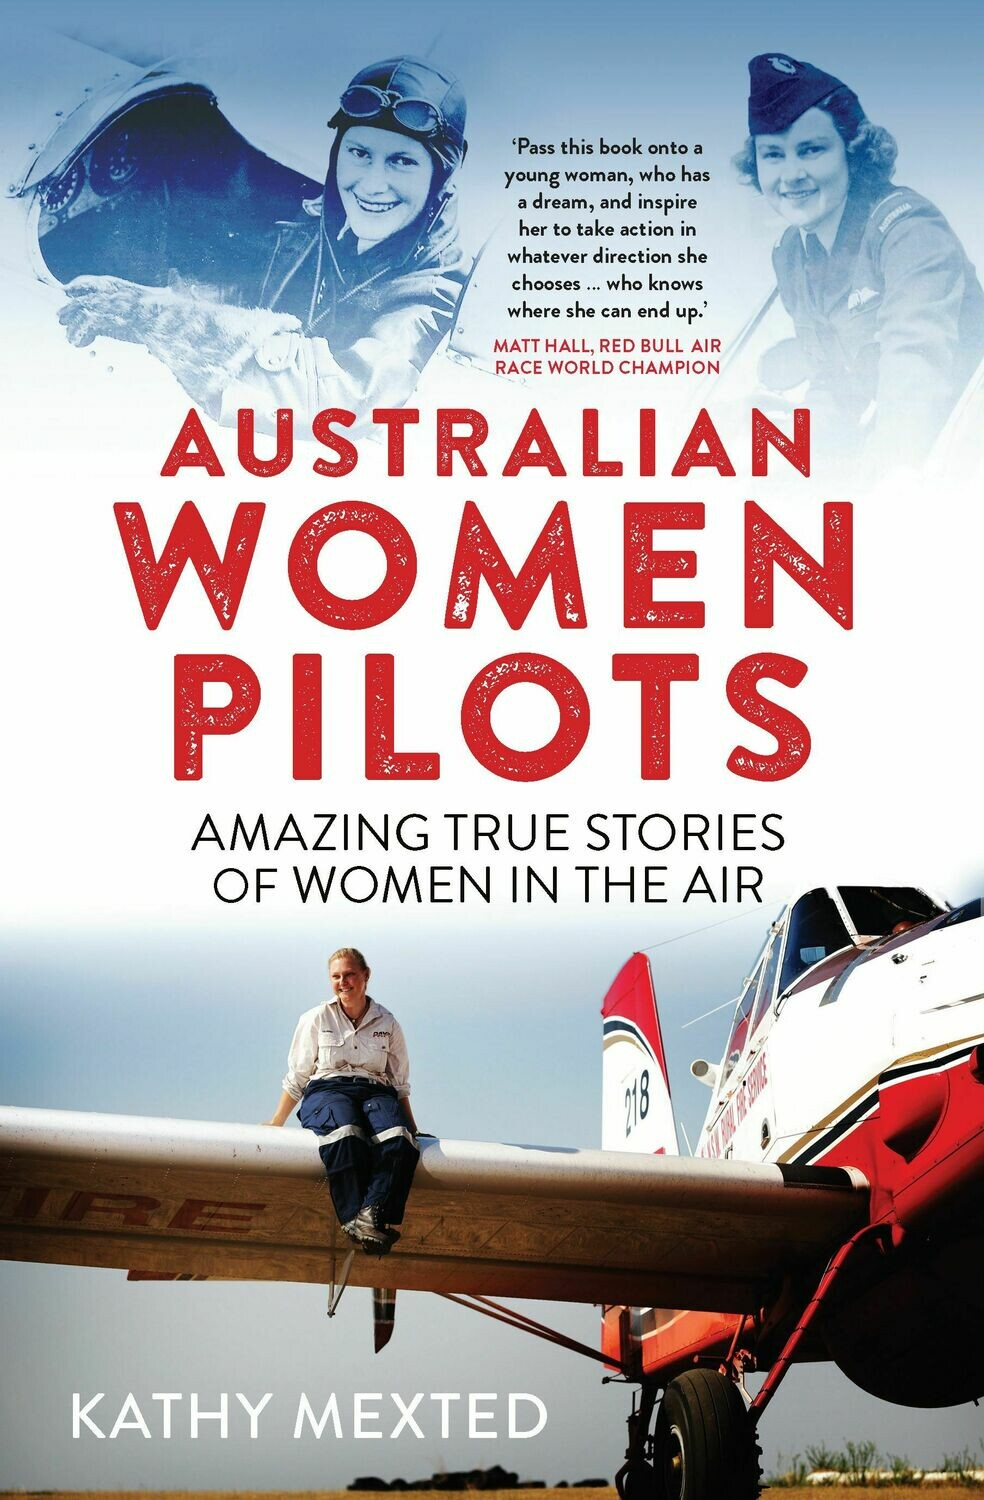 Australian Women Pilots: Amazing true stories of women in the air by Kathy Mexted